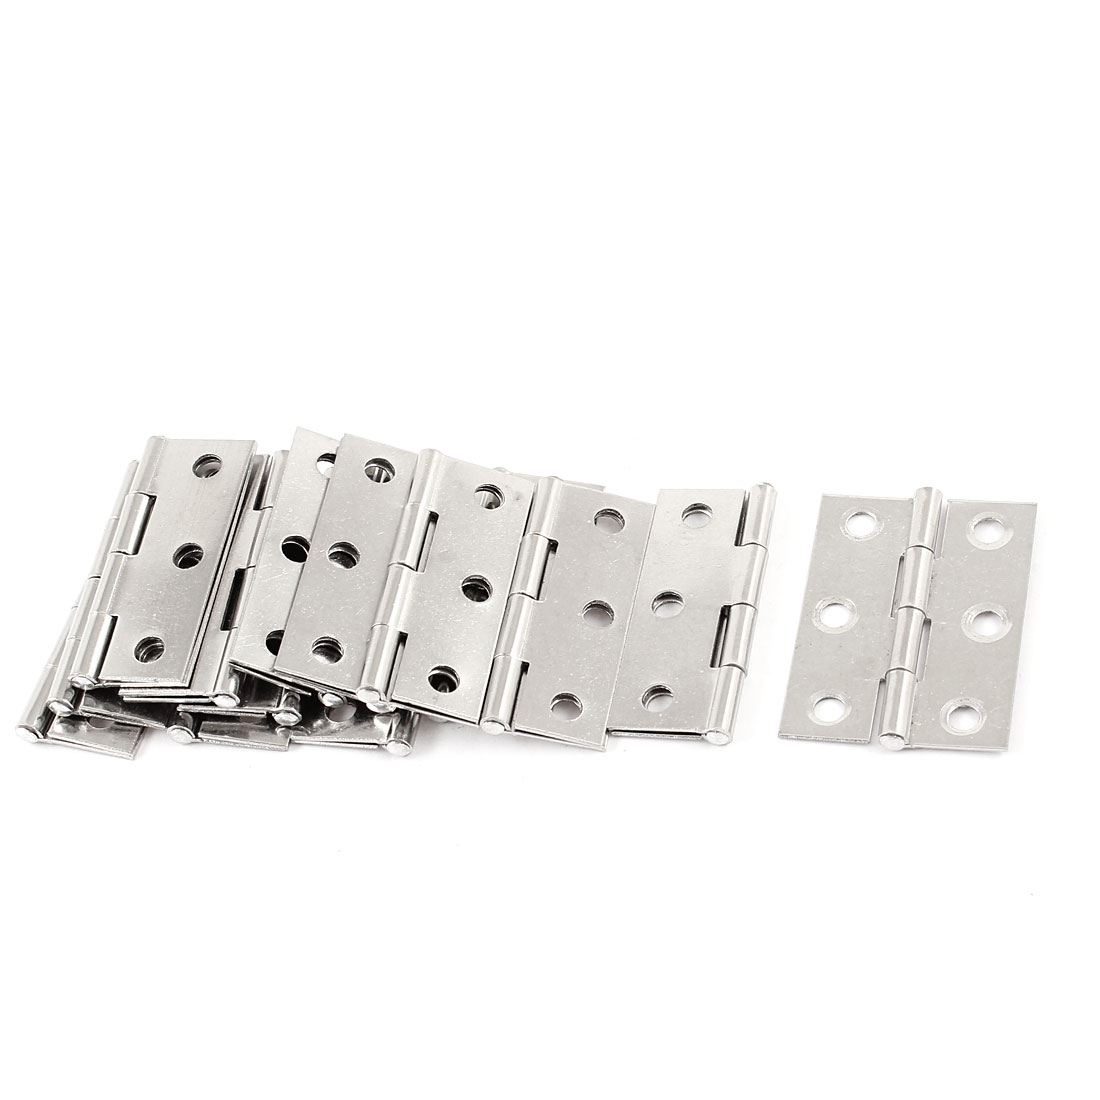 "14 Pcs 1.7"" Long Metal Rotatable Cupboard Door Hinge Silver Tone"